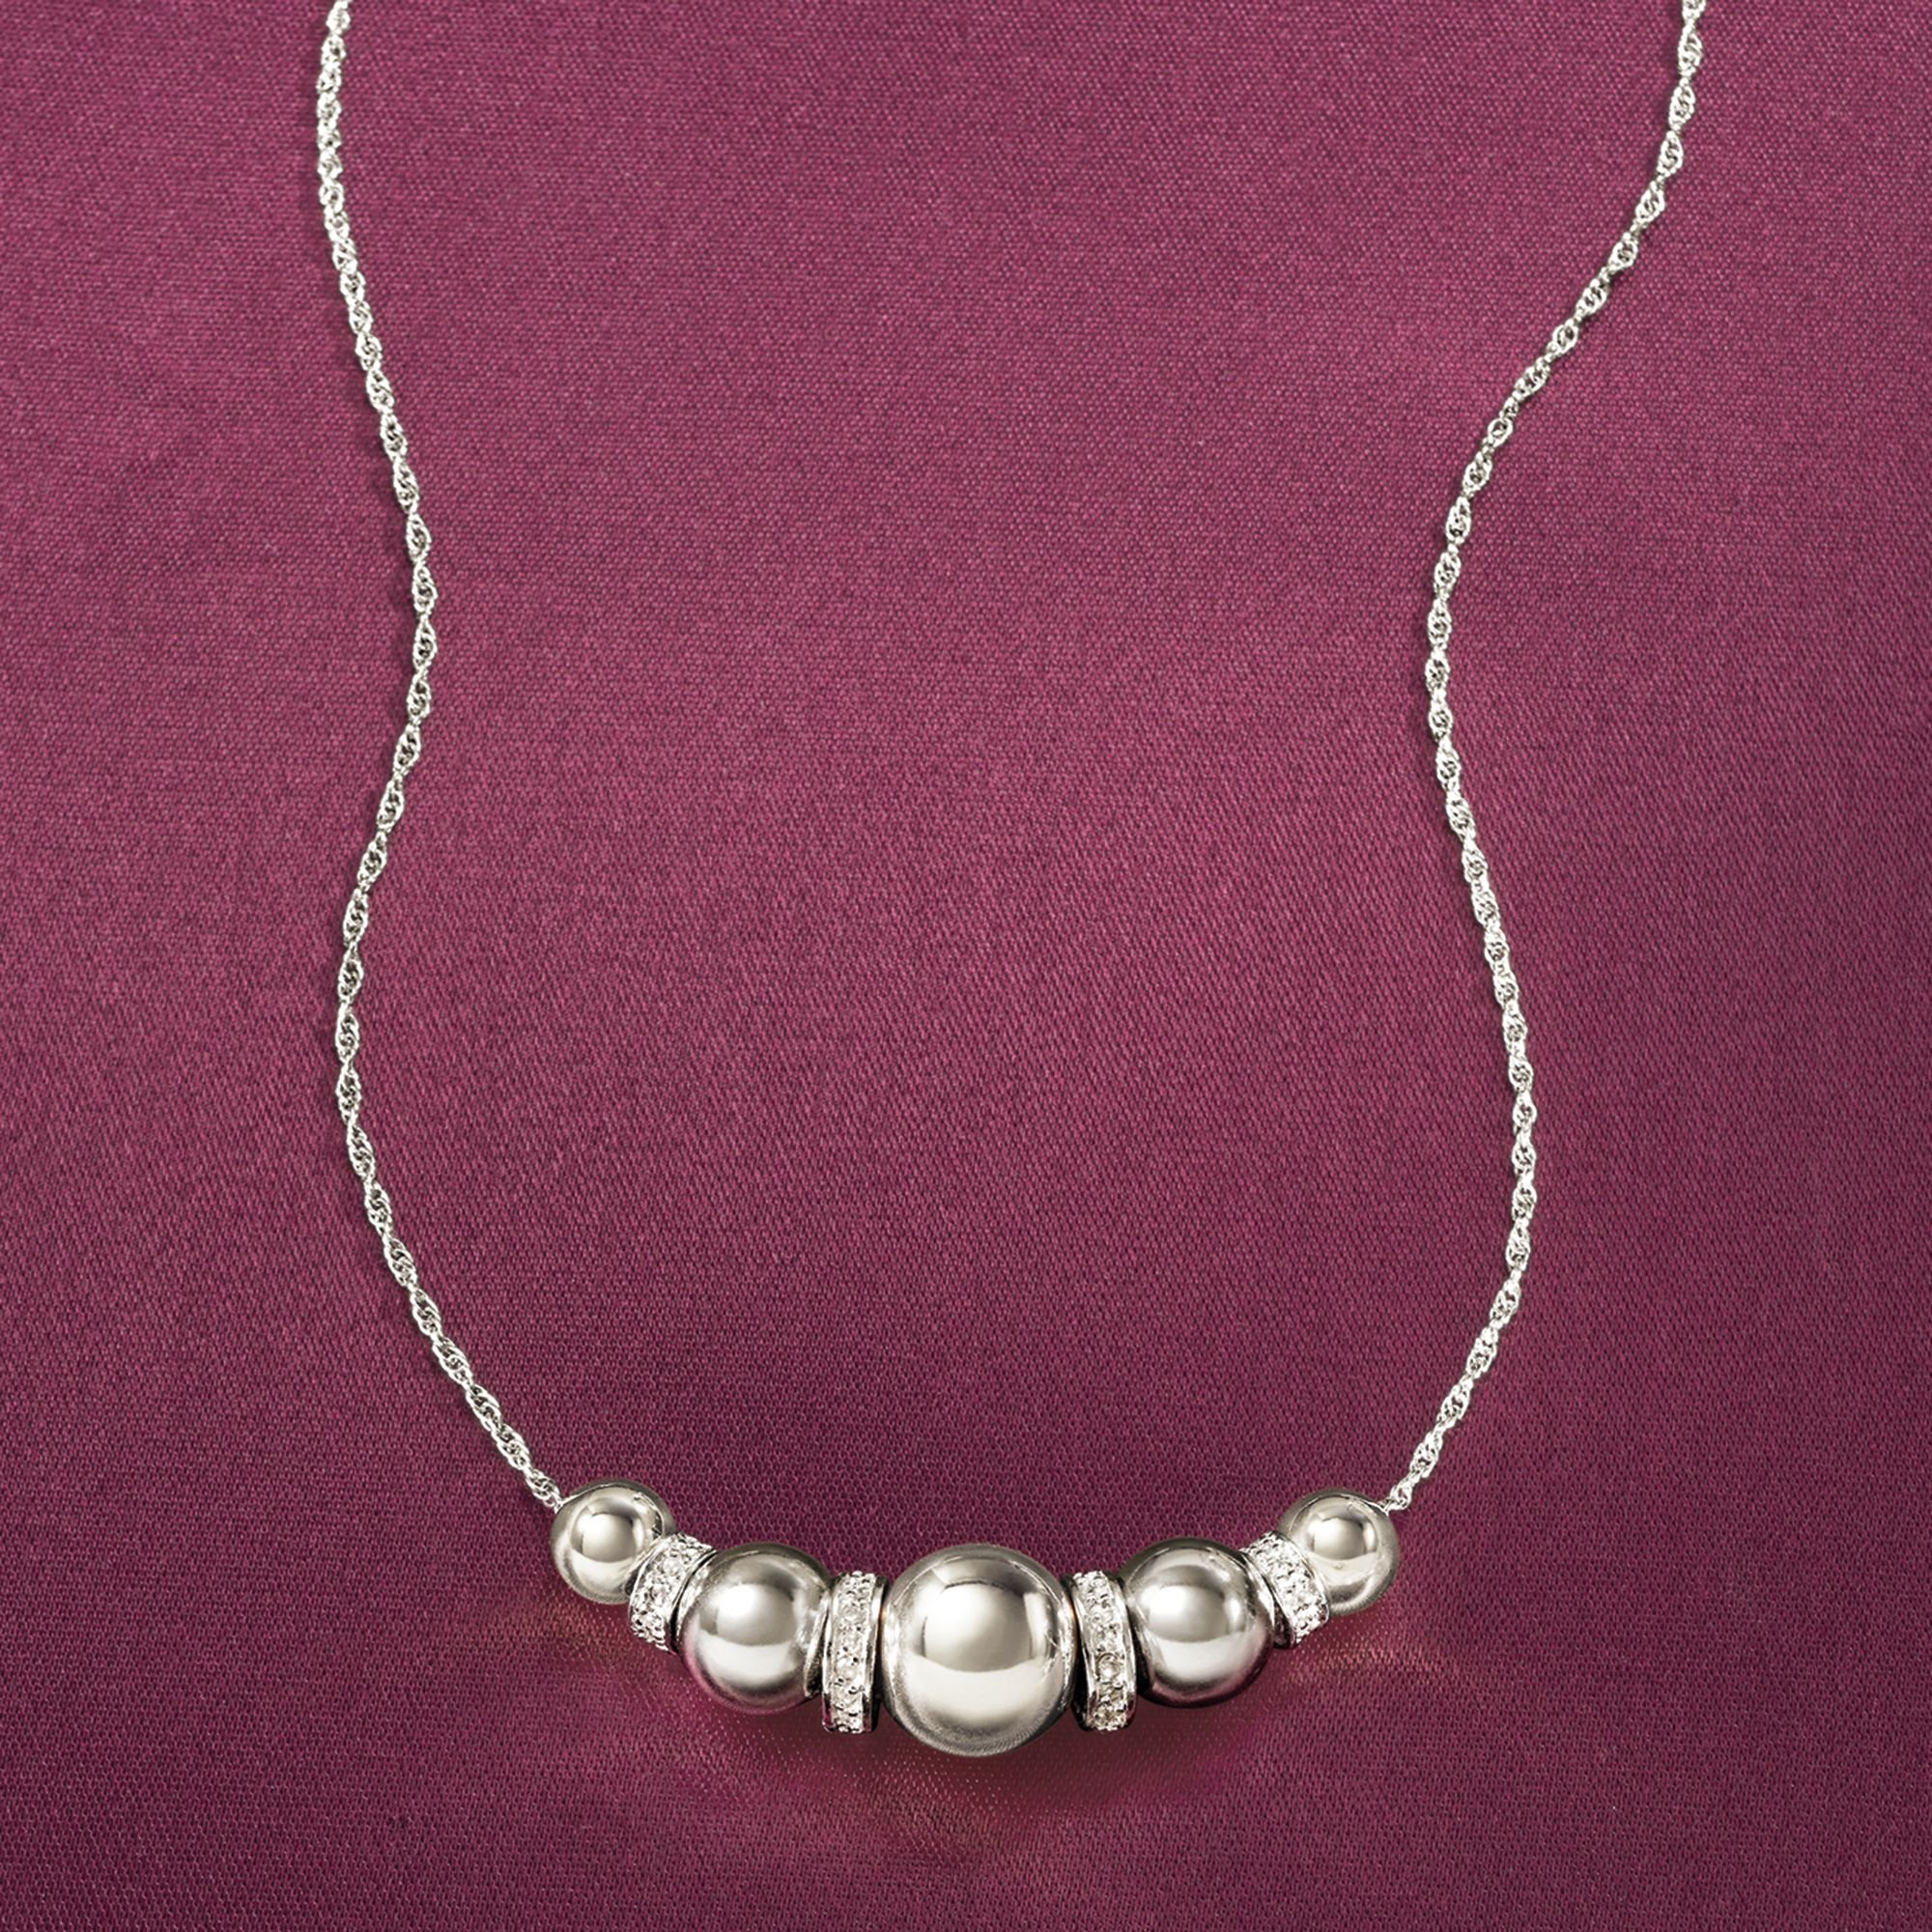 Ross-Simons 6-10mm Sterling Silver Bead Necklace With .20 ct. t.w. Diamonds by Ross-Simons (Image #5)